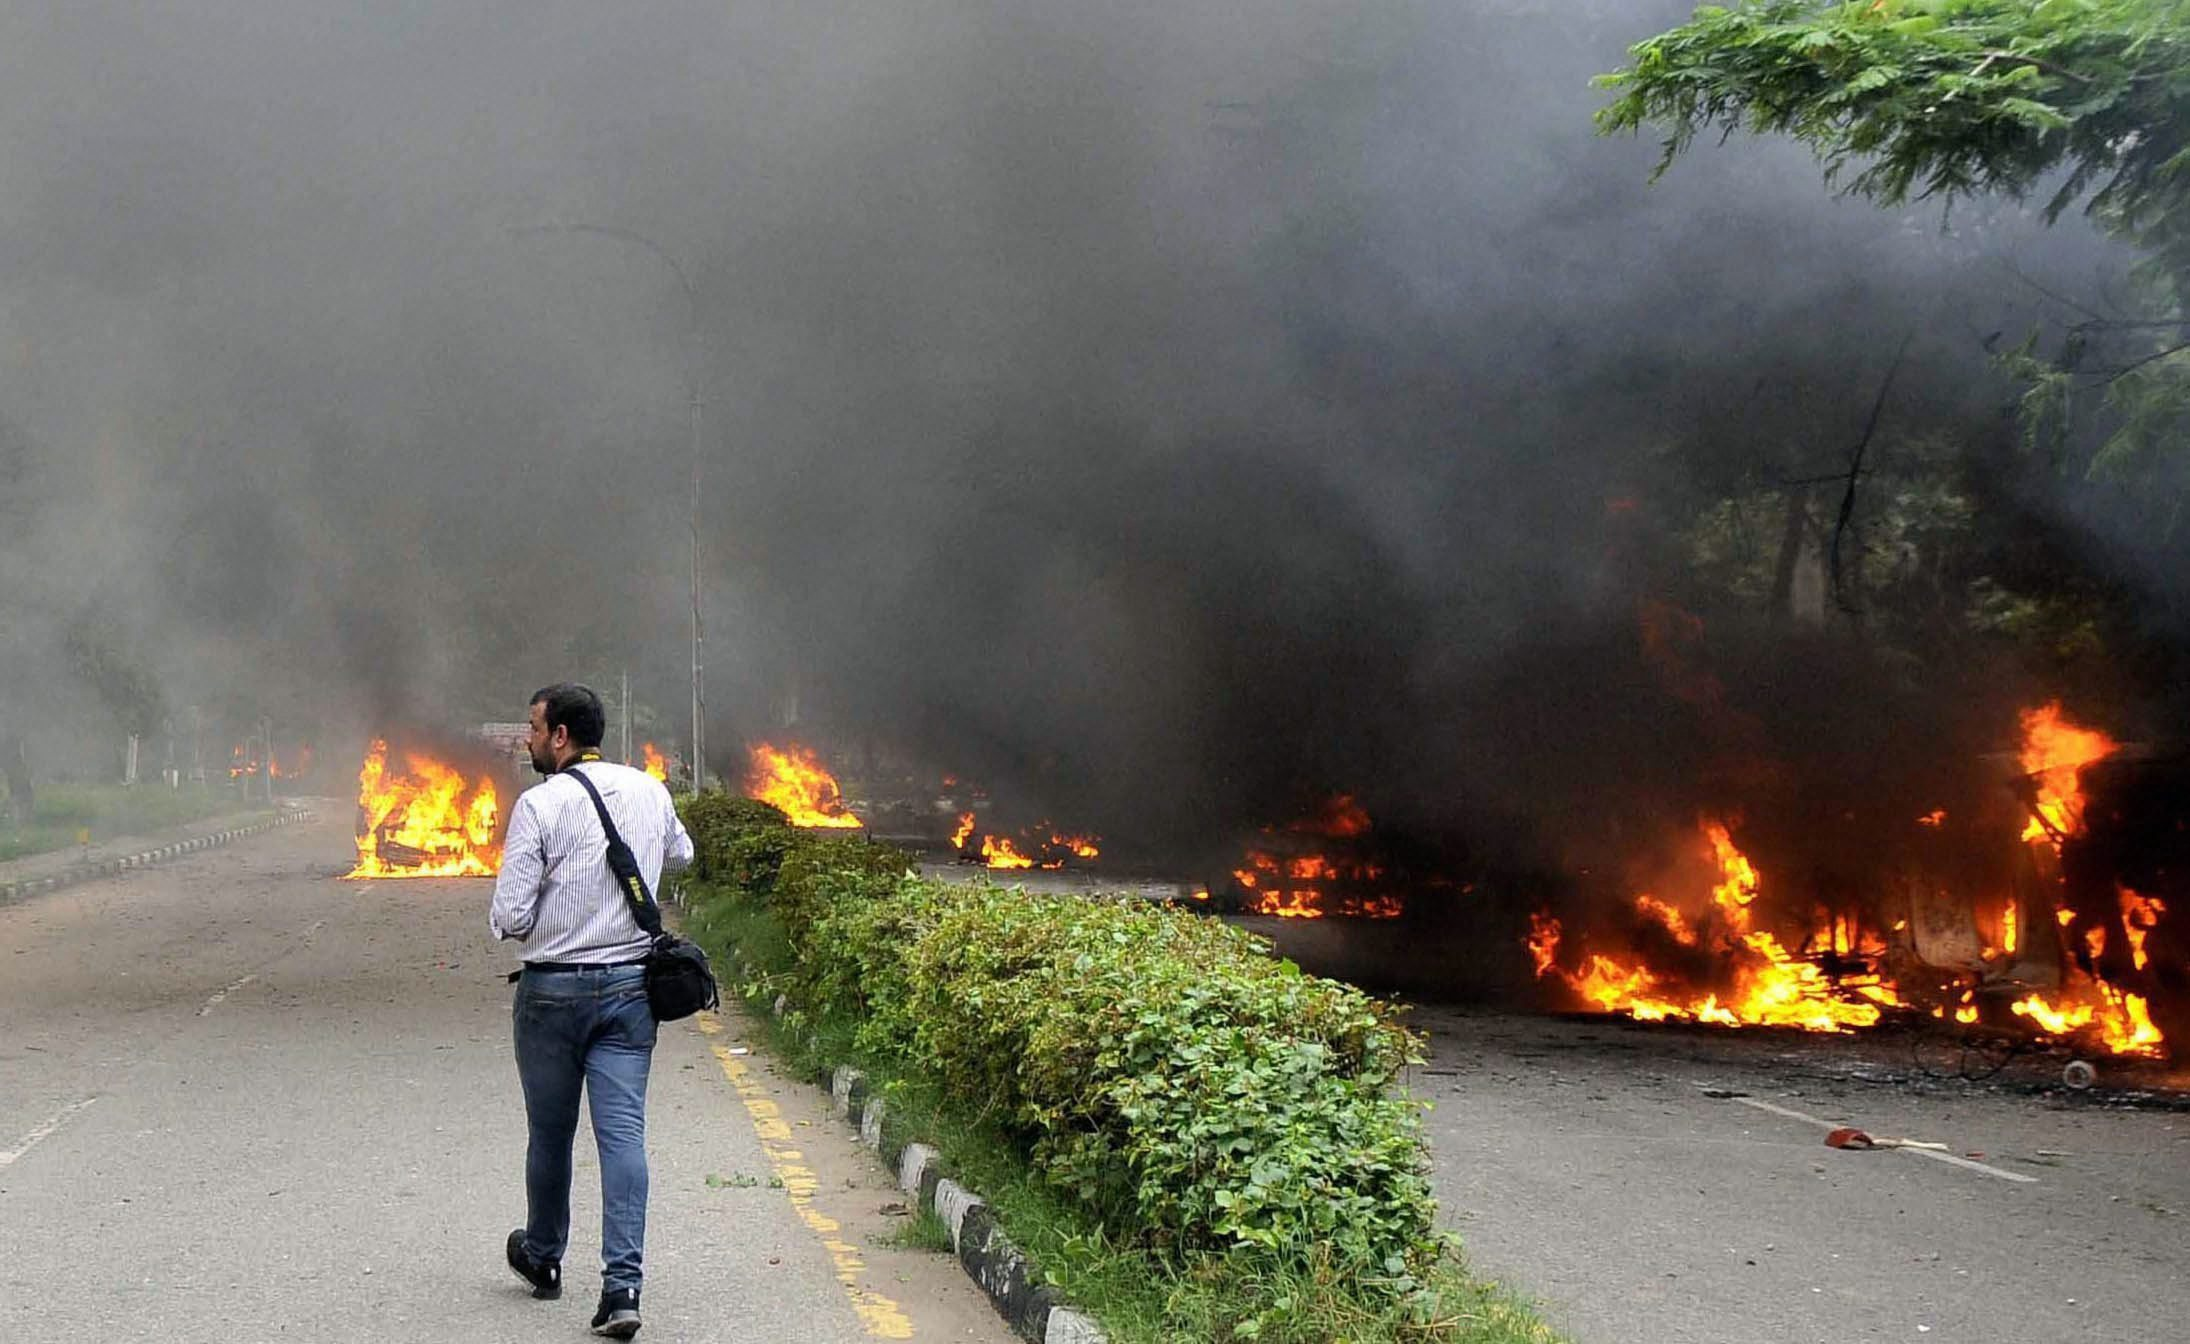 A photojournalist walks past burning vehilces in Panchkula, which was hit the worst by the riots. (Credit: PTI)